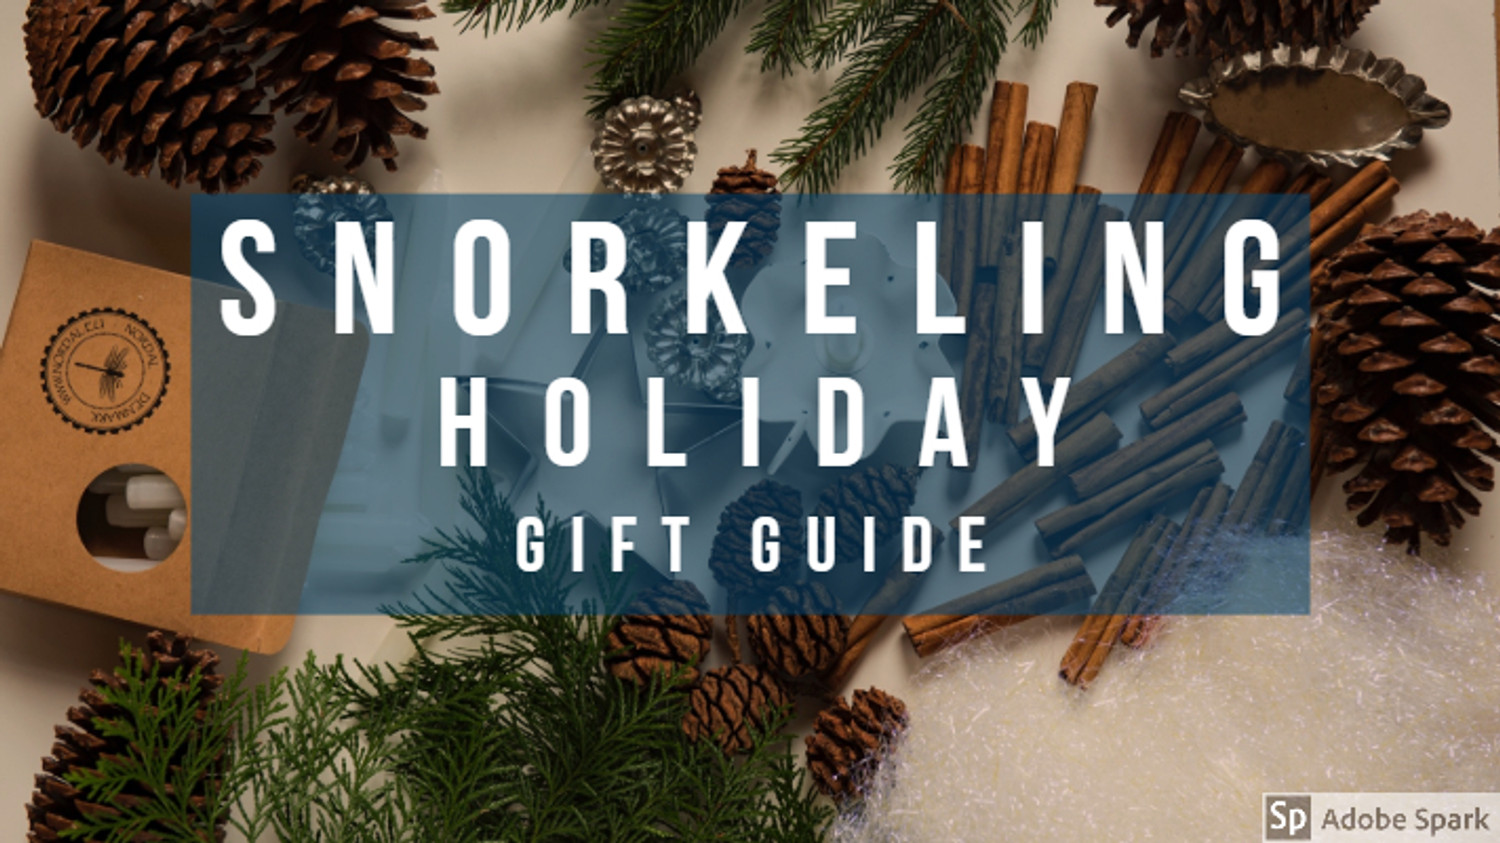 Snorkeling Holiday Gift Guide